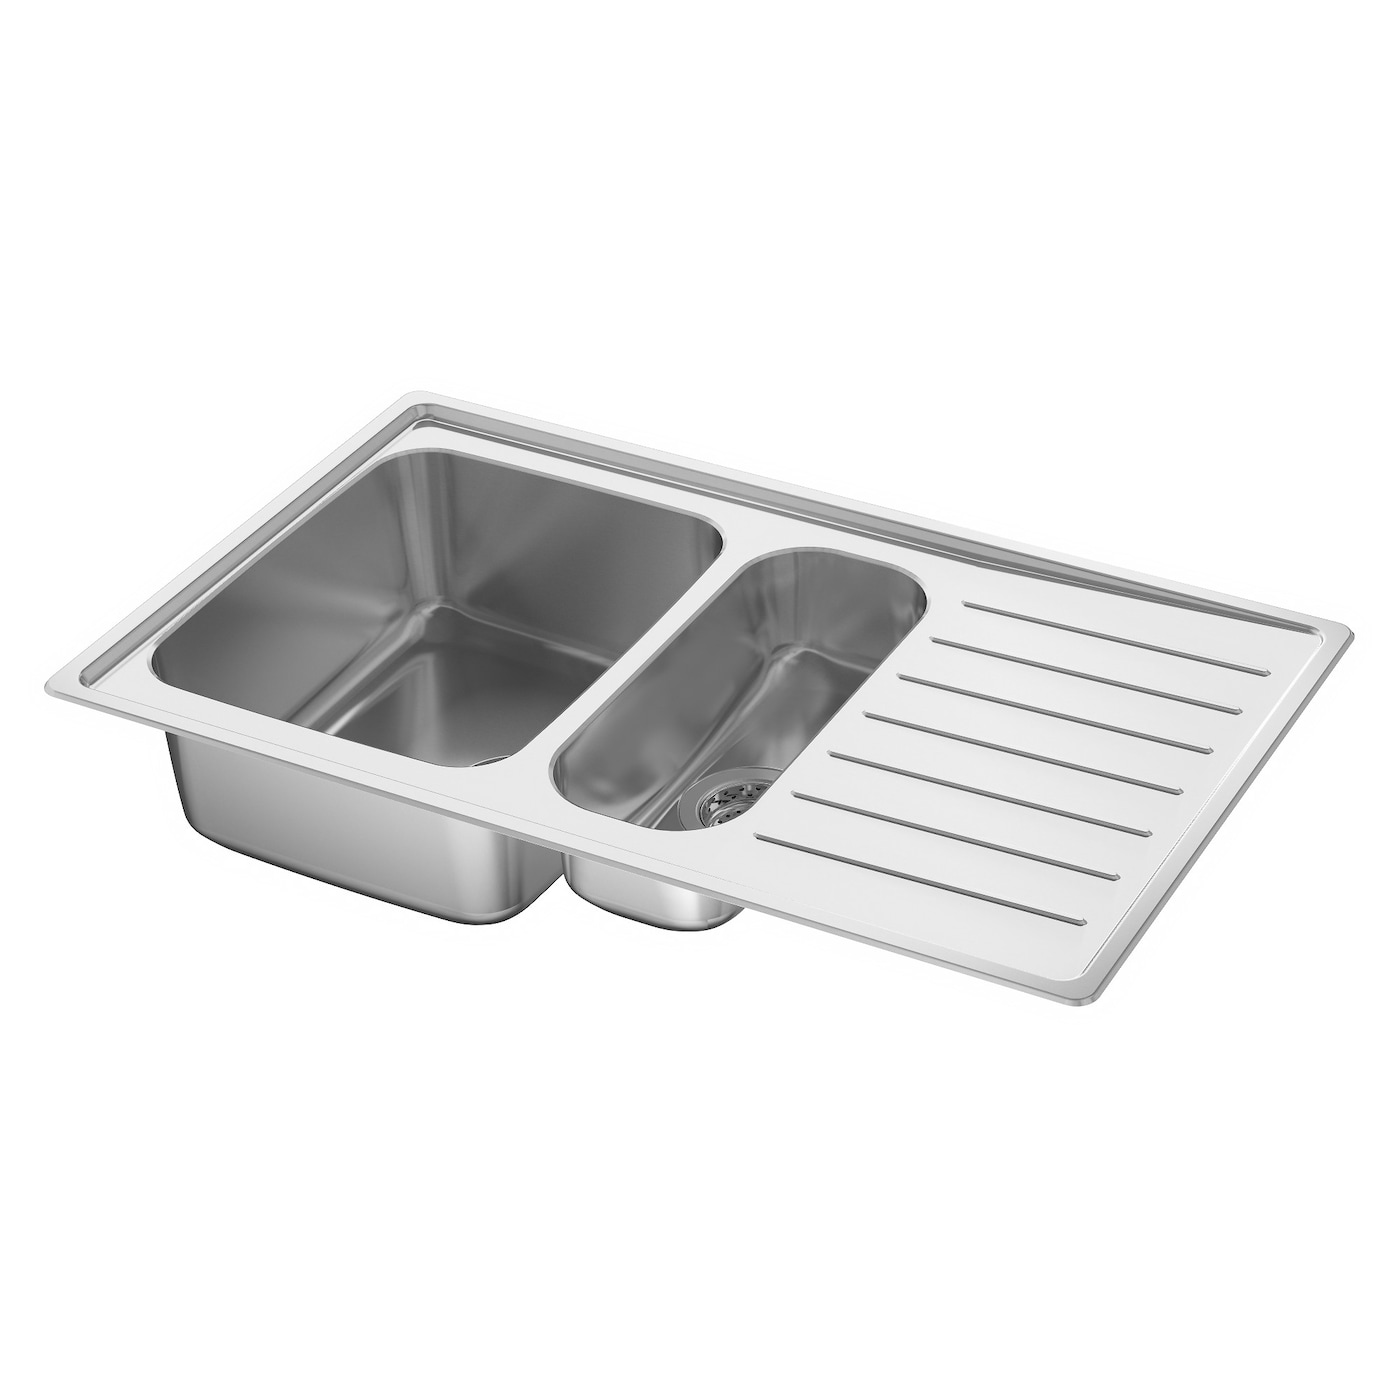 116 cm stainless steel double bowl single drainer inset sink right - Ikea Vattudalen Inset Sink 1 Bowl W Drainboard